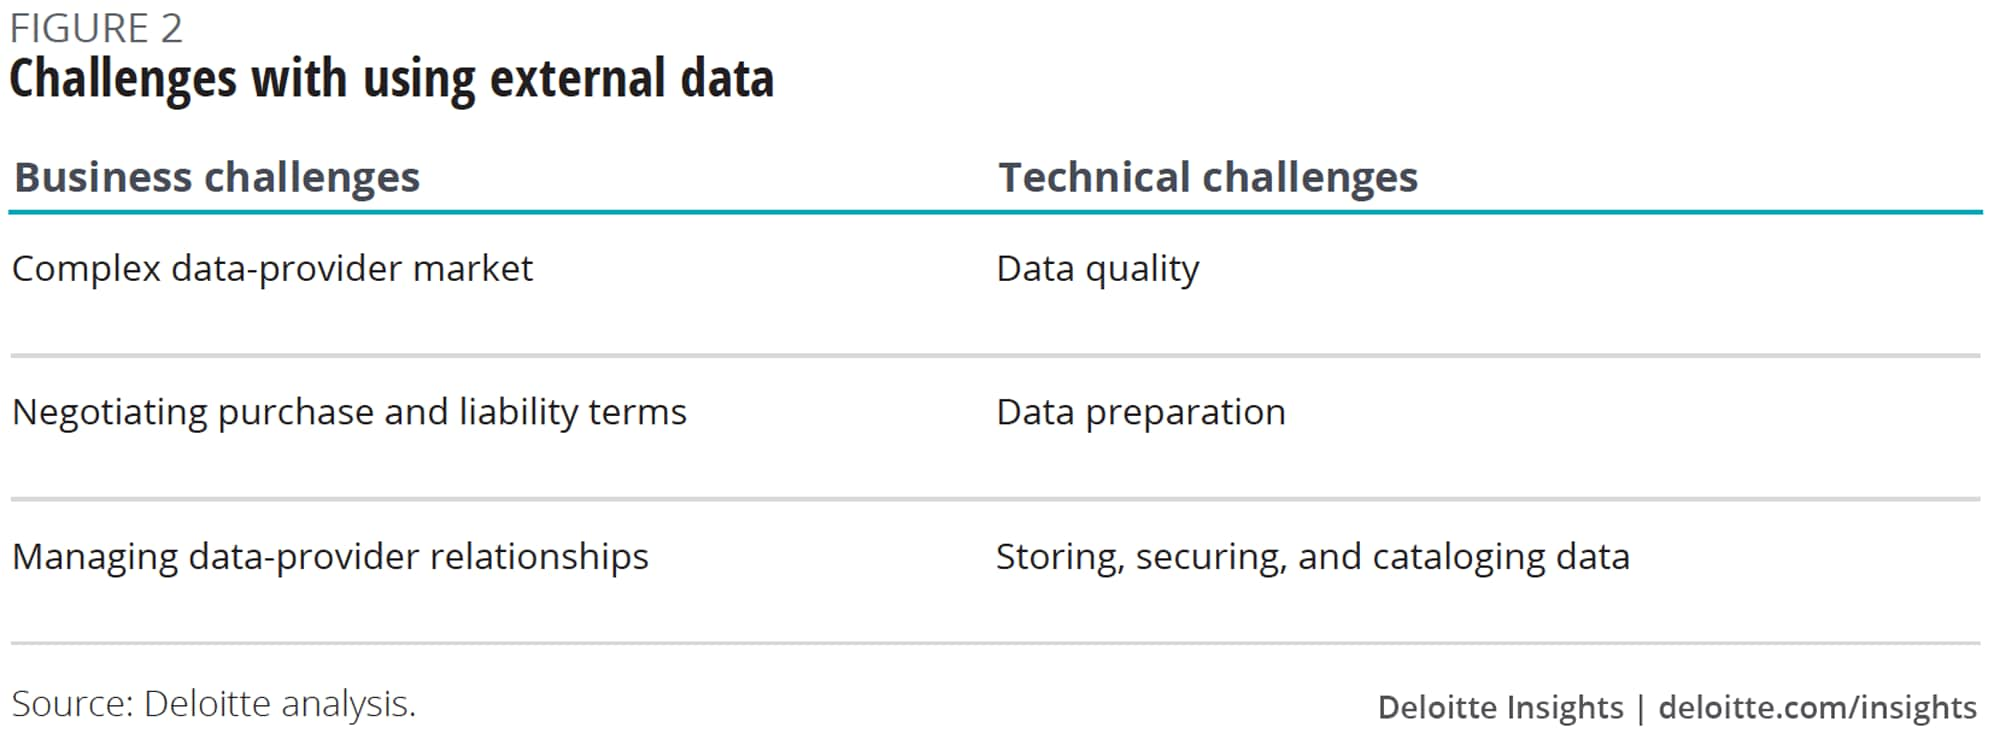 Challenges with using external data